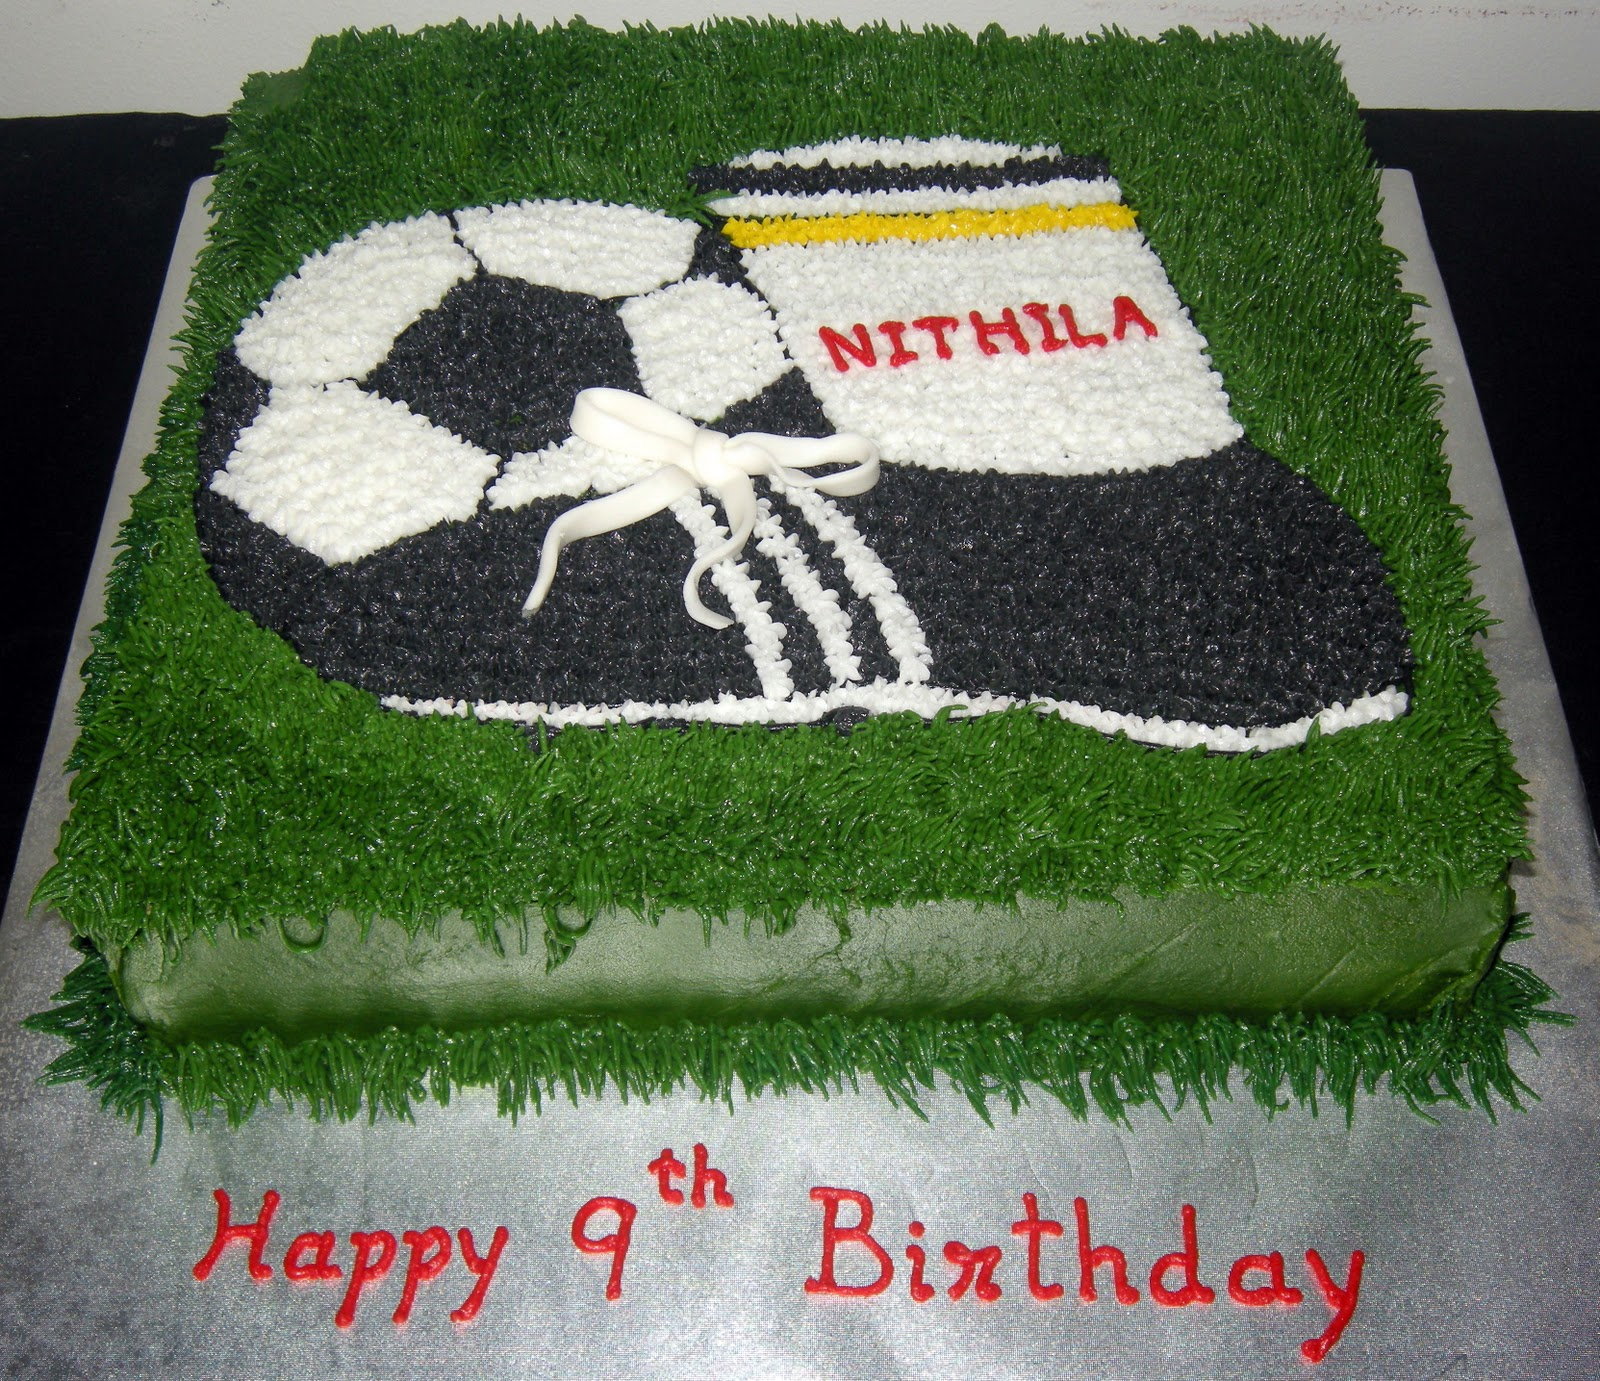 Football Themed Cakes http://harshicakes.blogspot.com/2011/01/football-theme-cake.html